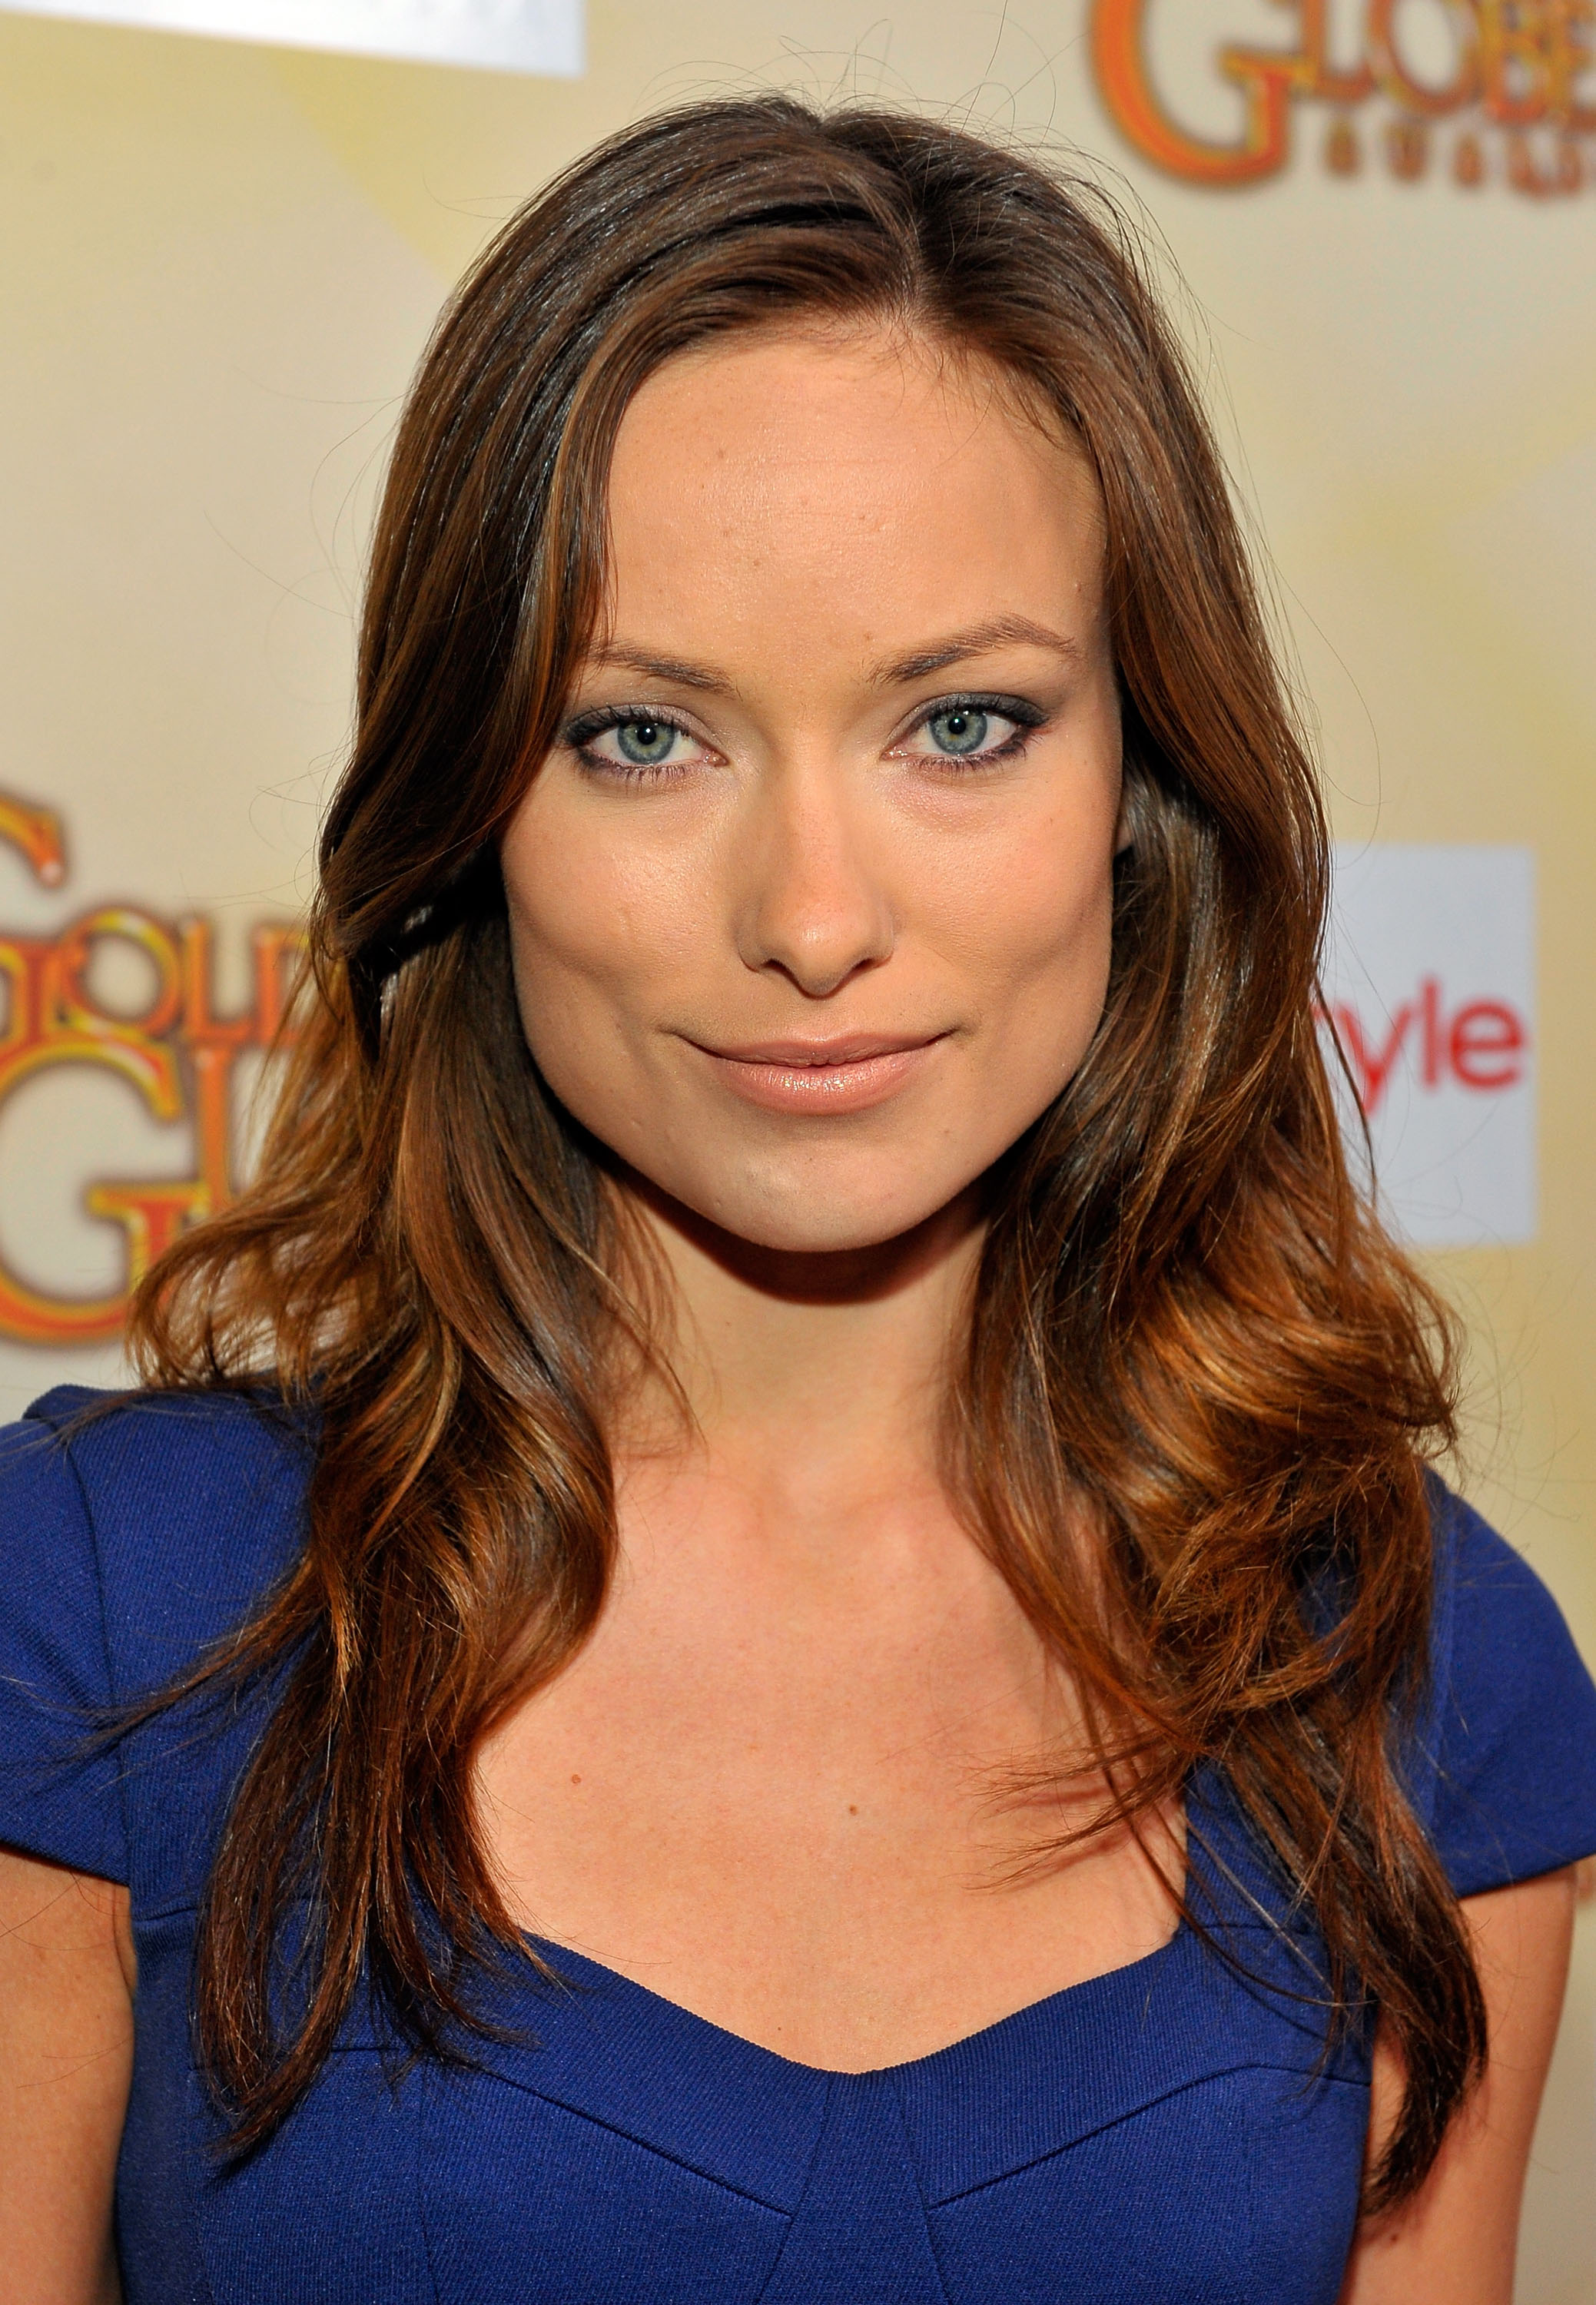 02273_Celebutopia-Olivia_Wilde_arrives_at_the_Golden_Globe_Salute_To_Young_Hollywood-02_122_1156lo.jpg